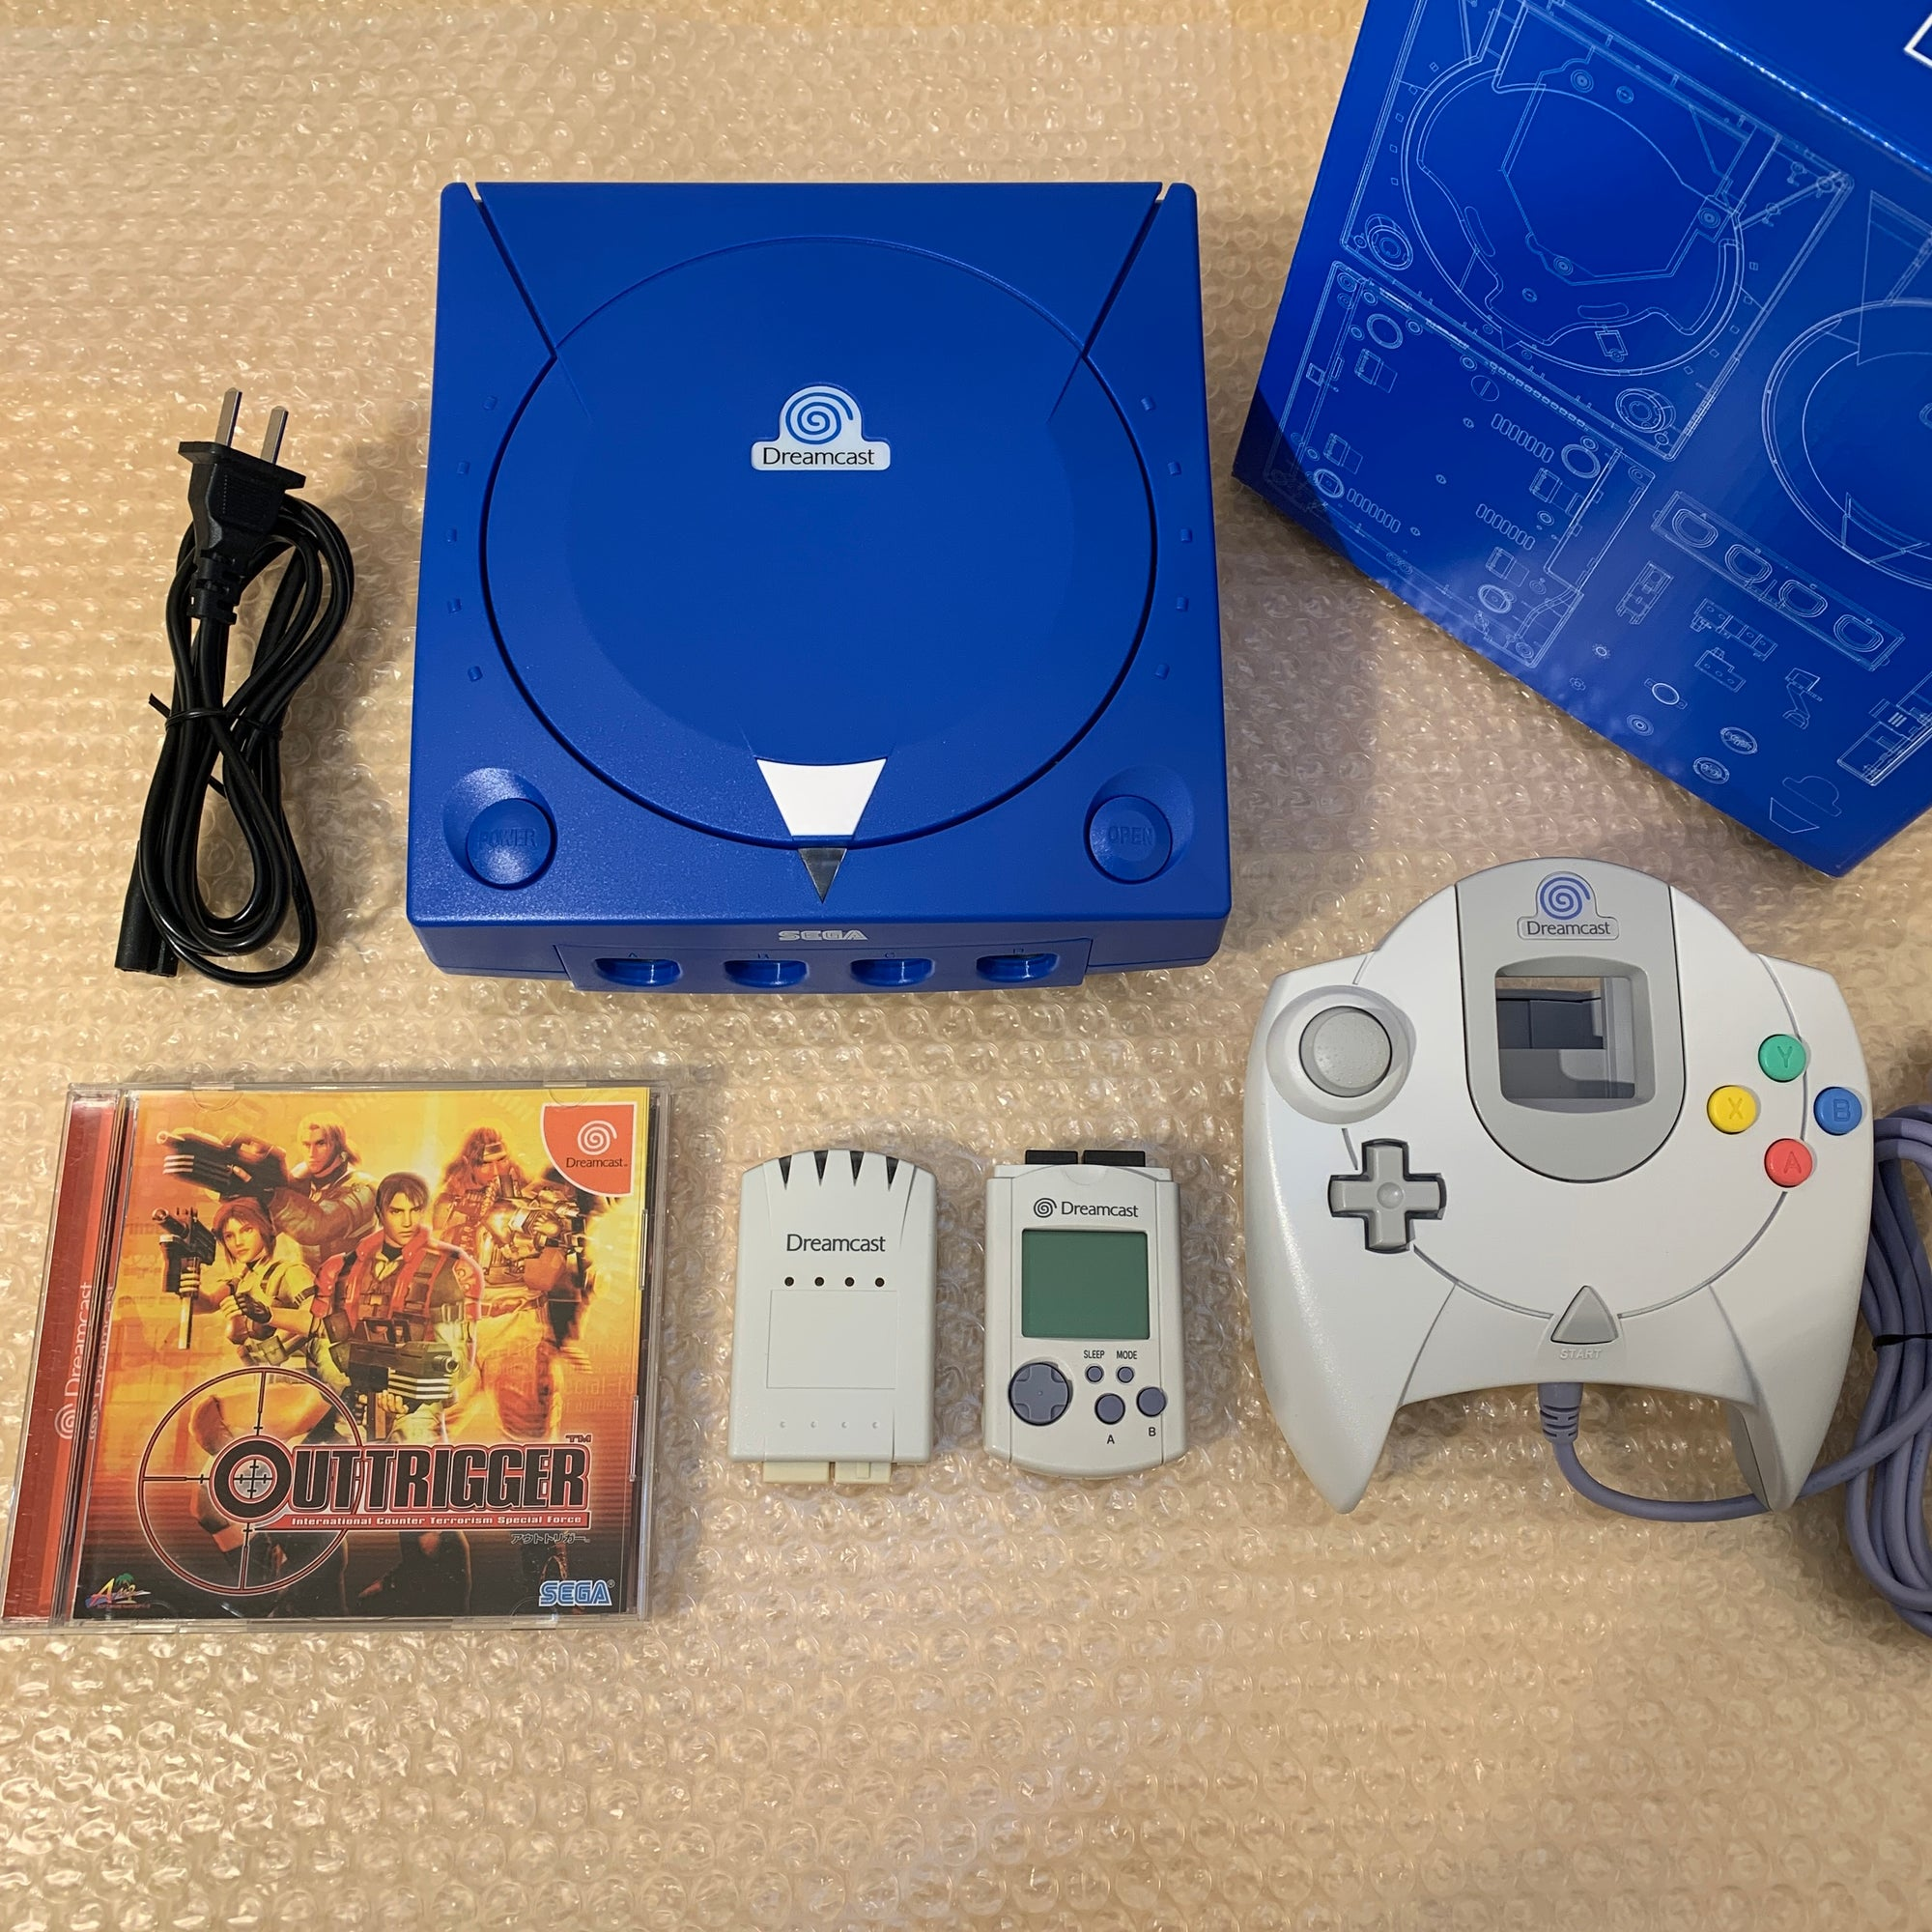 Blue Dreamcast set with DCDigital (DCHDMI) kit - Region Free